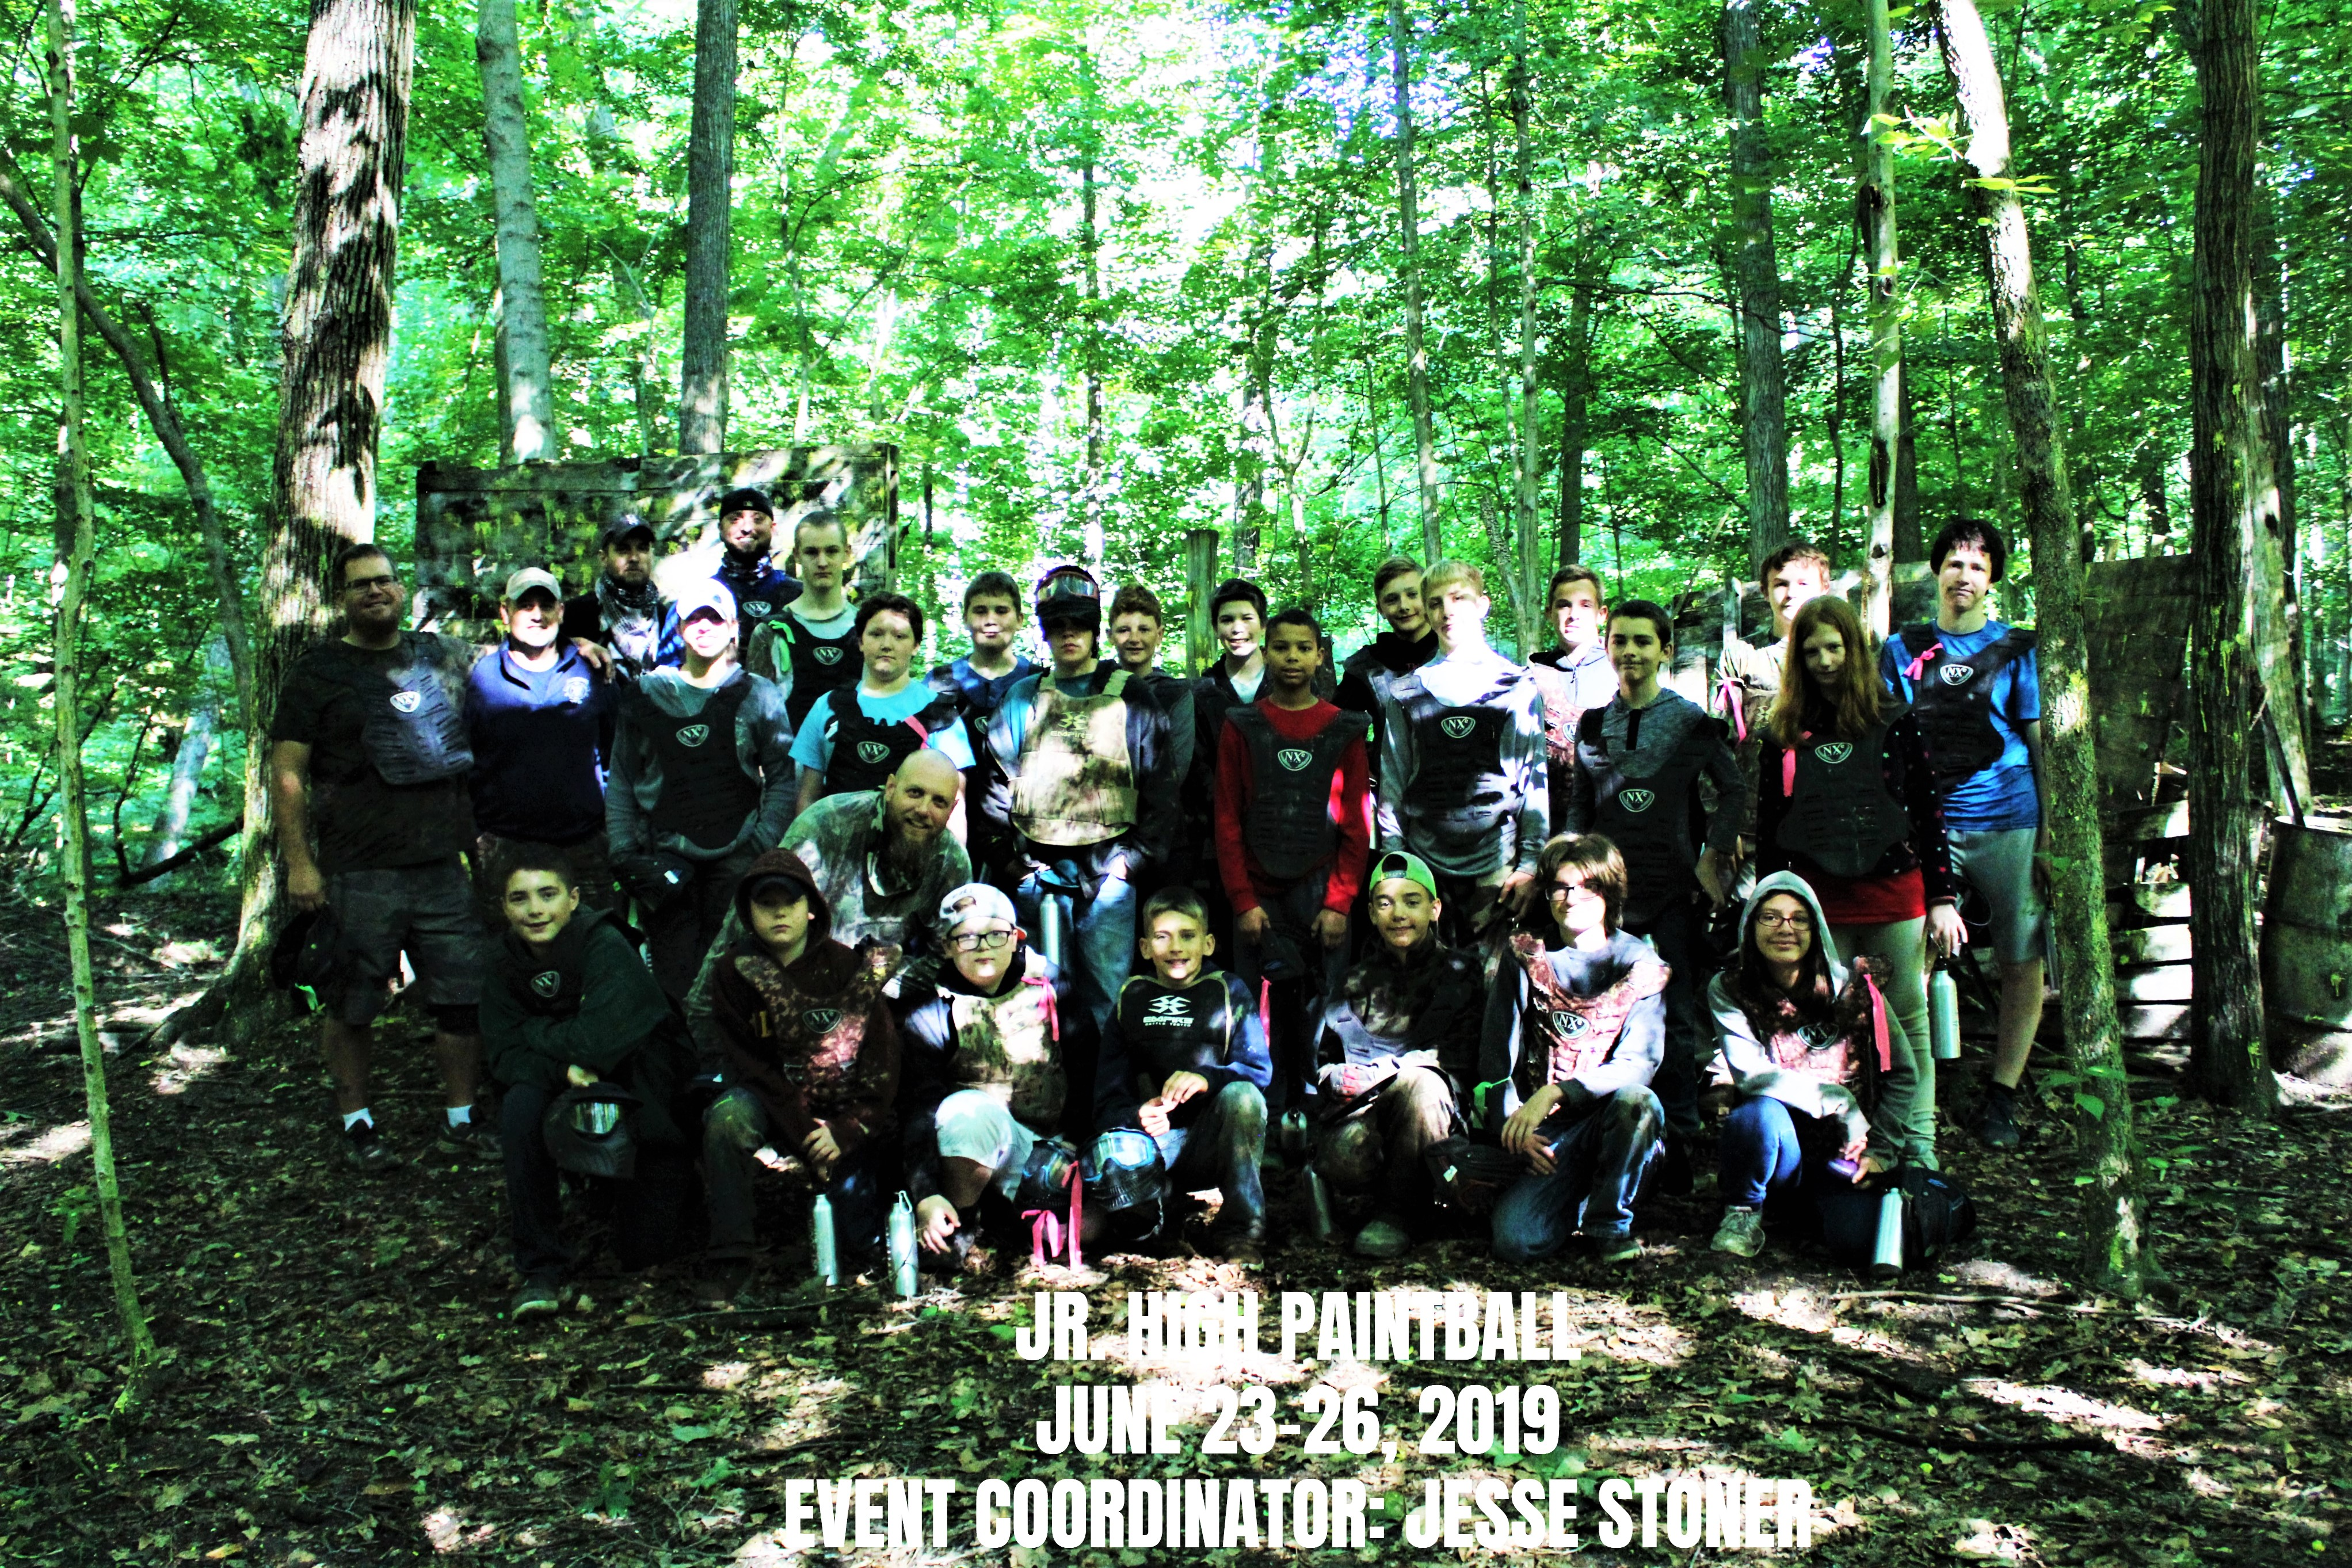 Jr. High Paintball